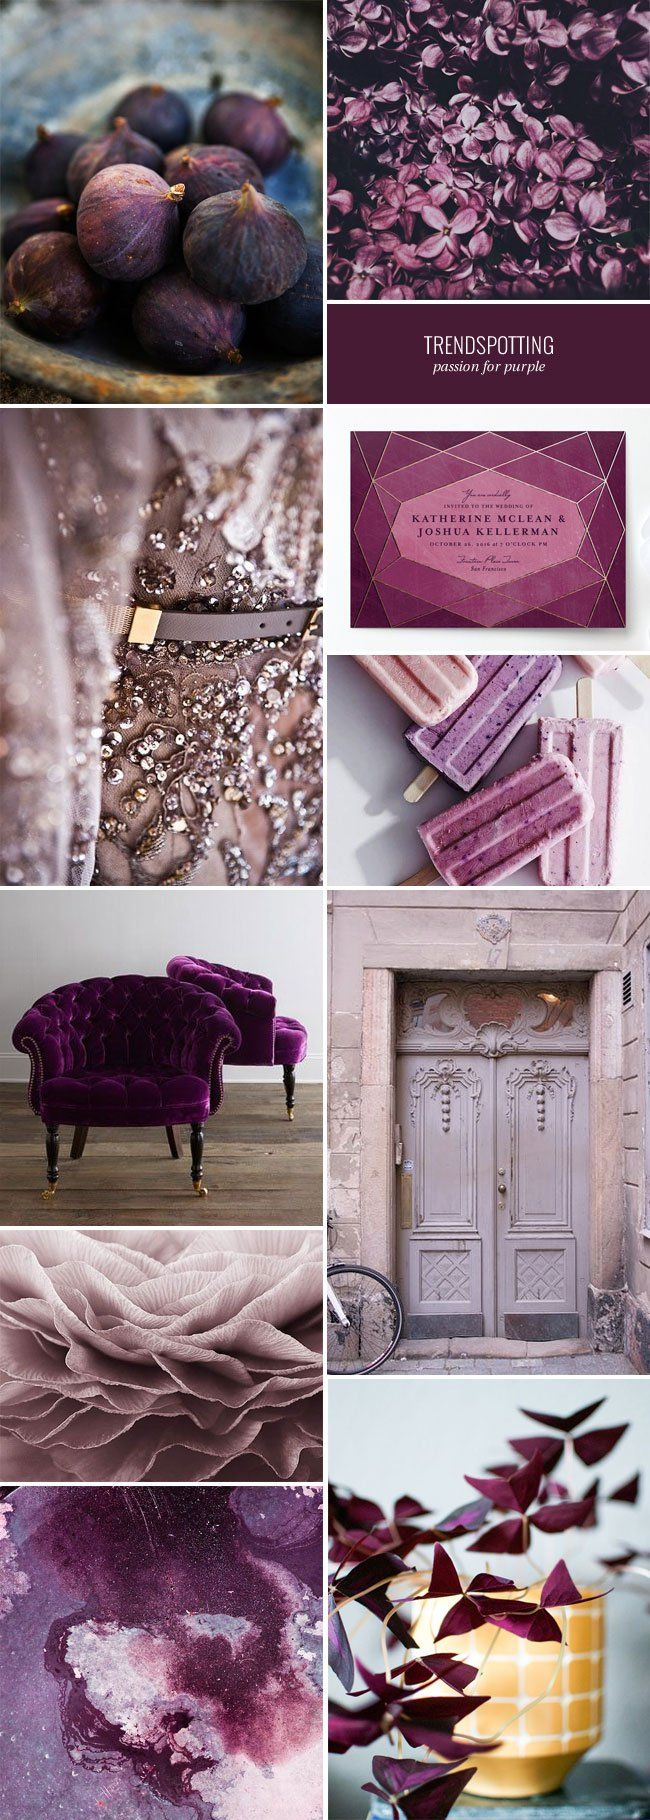 Trendspotting : Passion for that Purple chair!